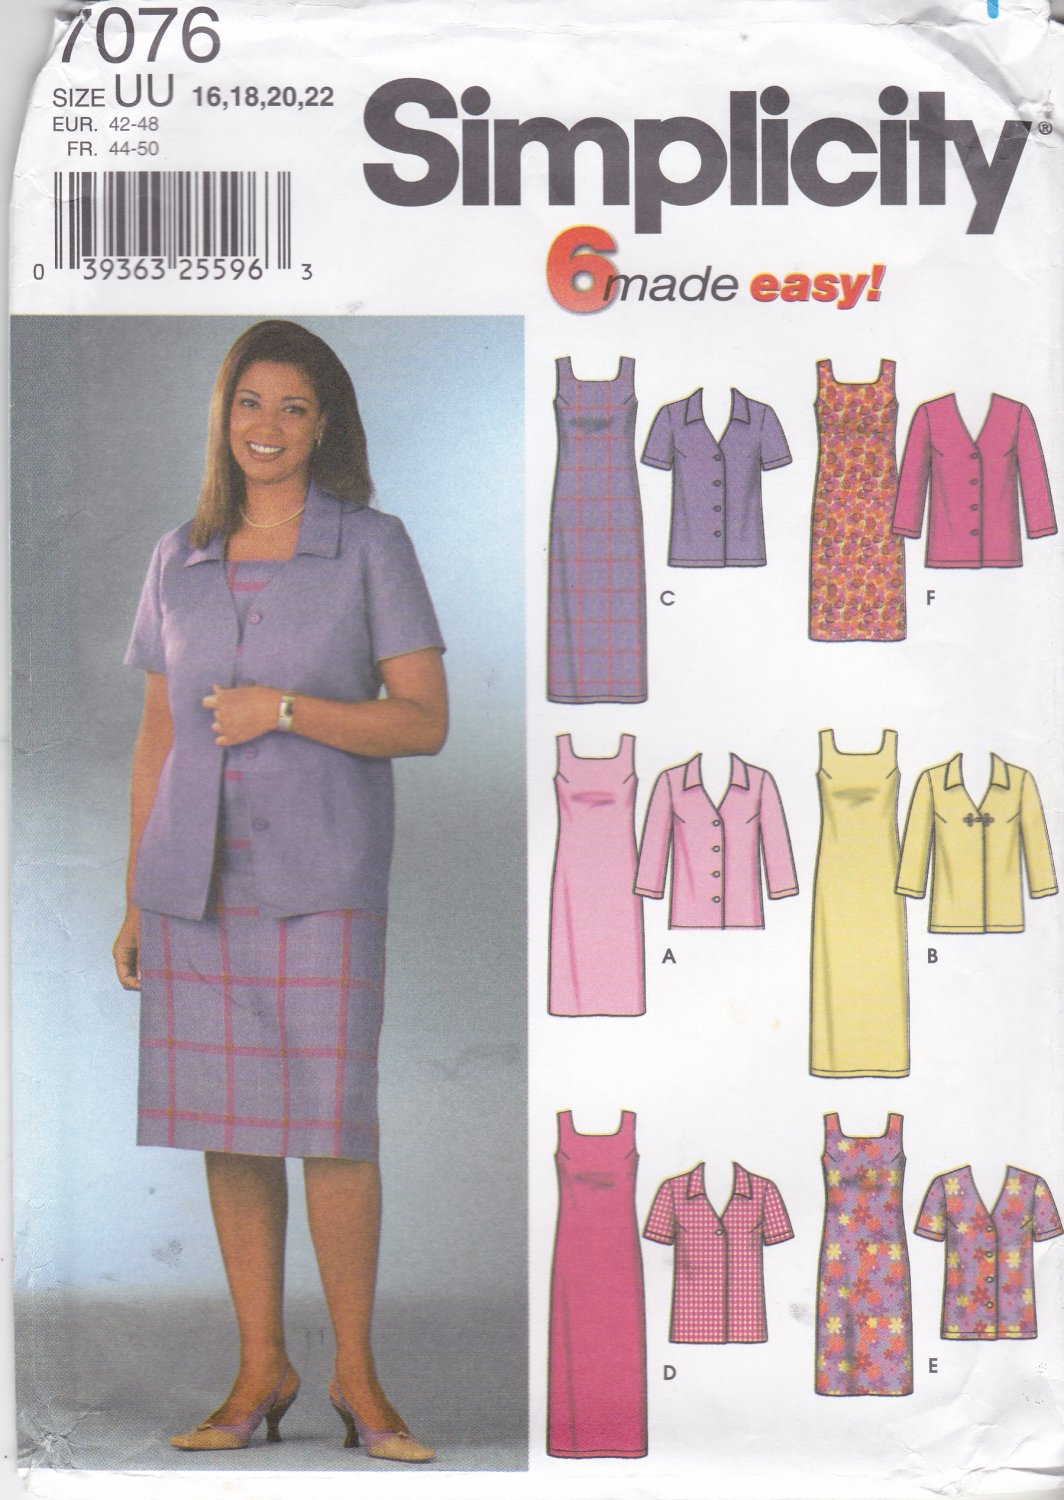 Simplicity Sewing Pattern 7076 Misses Size 16-22 Easy Jacket Straight Sheath Sleeveless Dress